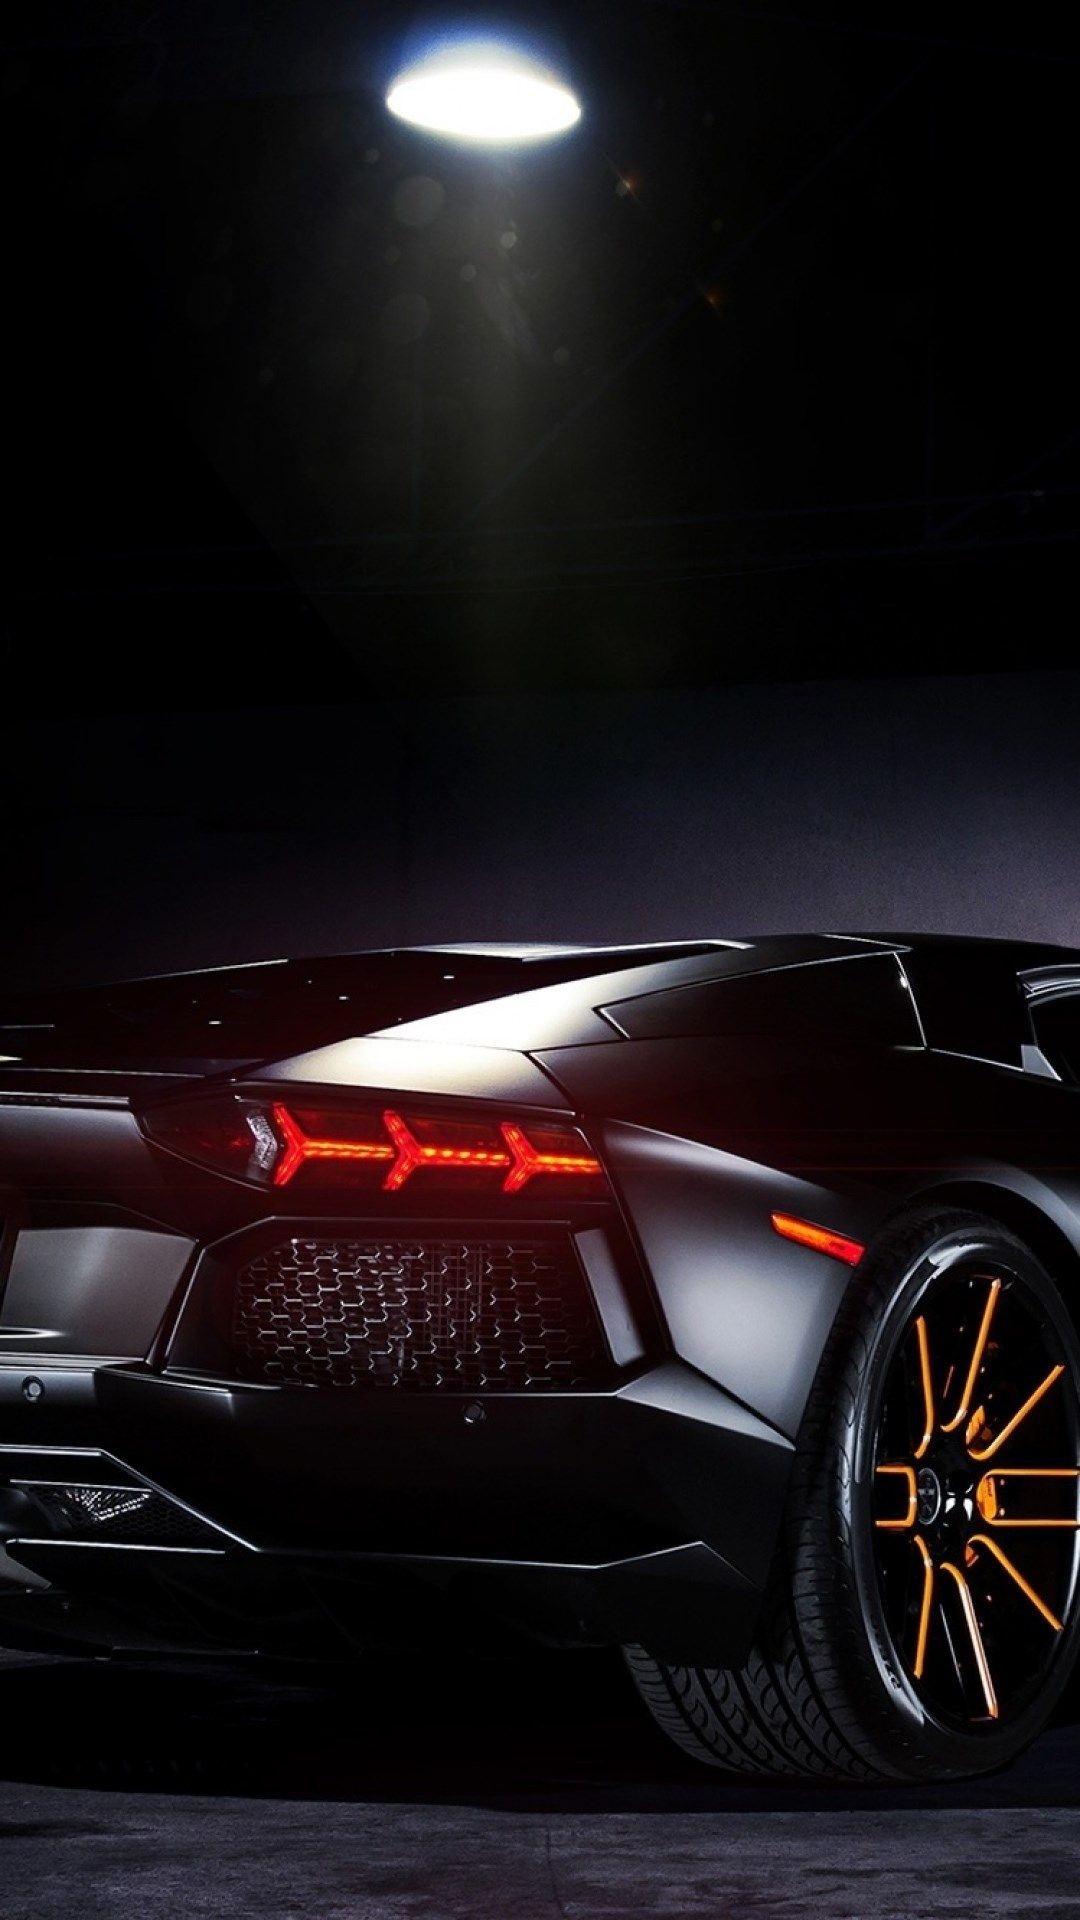 Black Lamborghini 1080 X 1920 Wallpaper For Phone